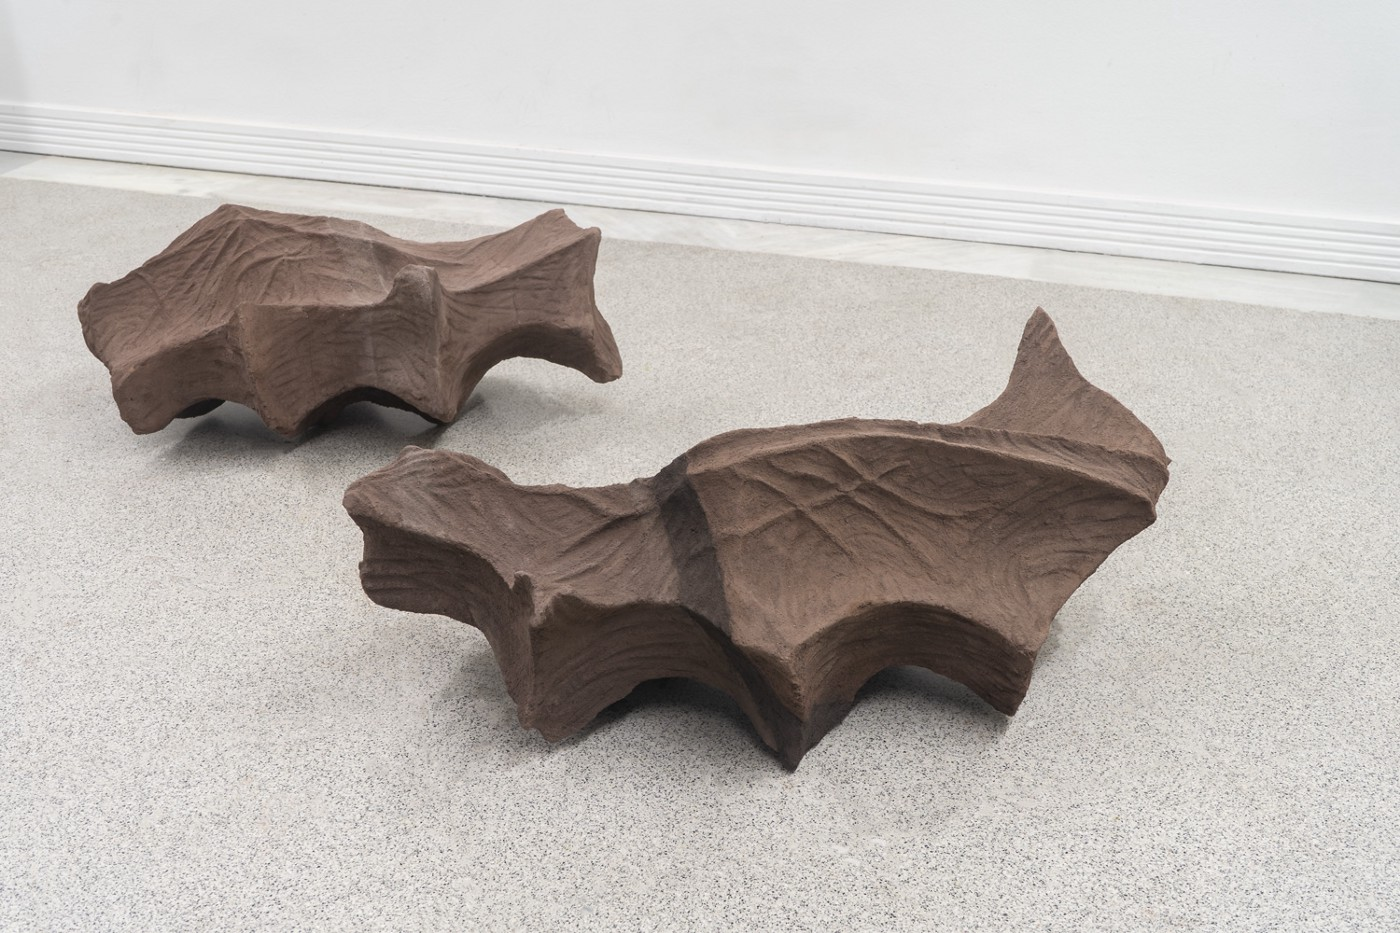 Two sculptures that replicate the space left inside the hand's palm when it closes.